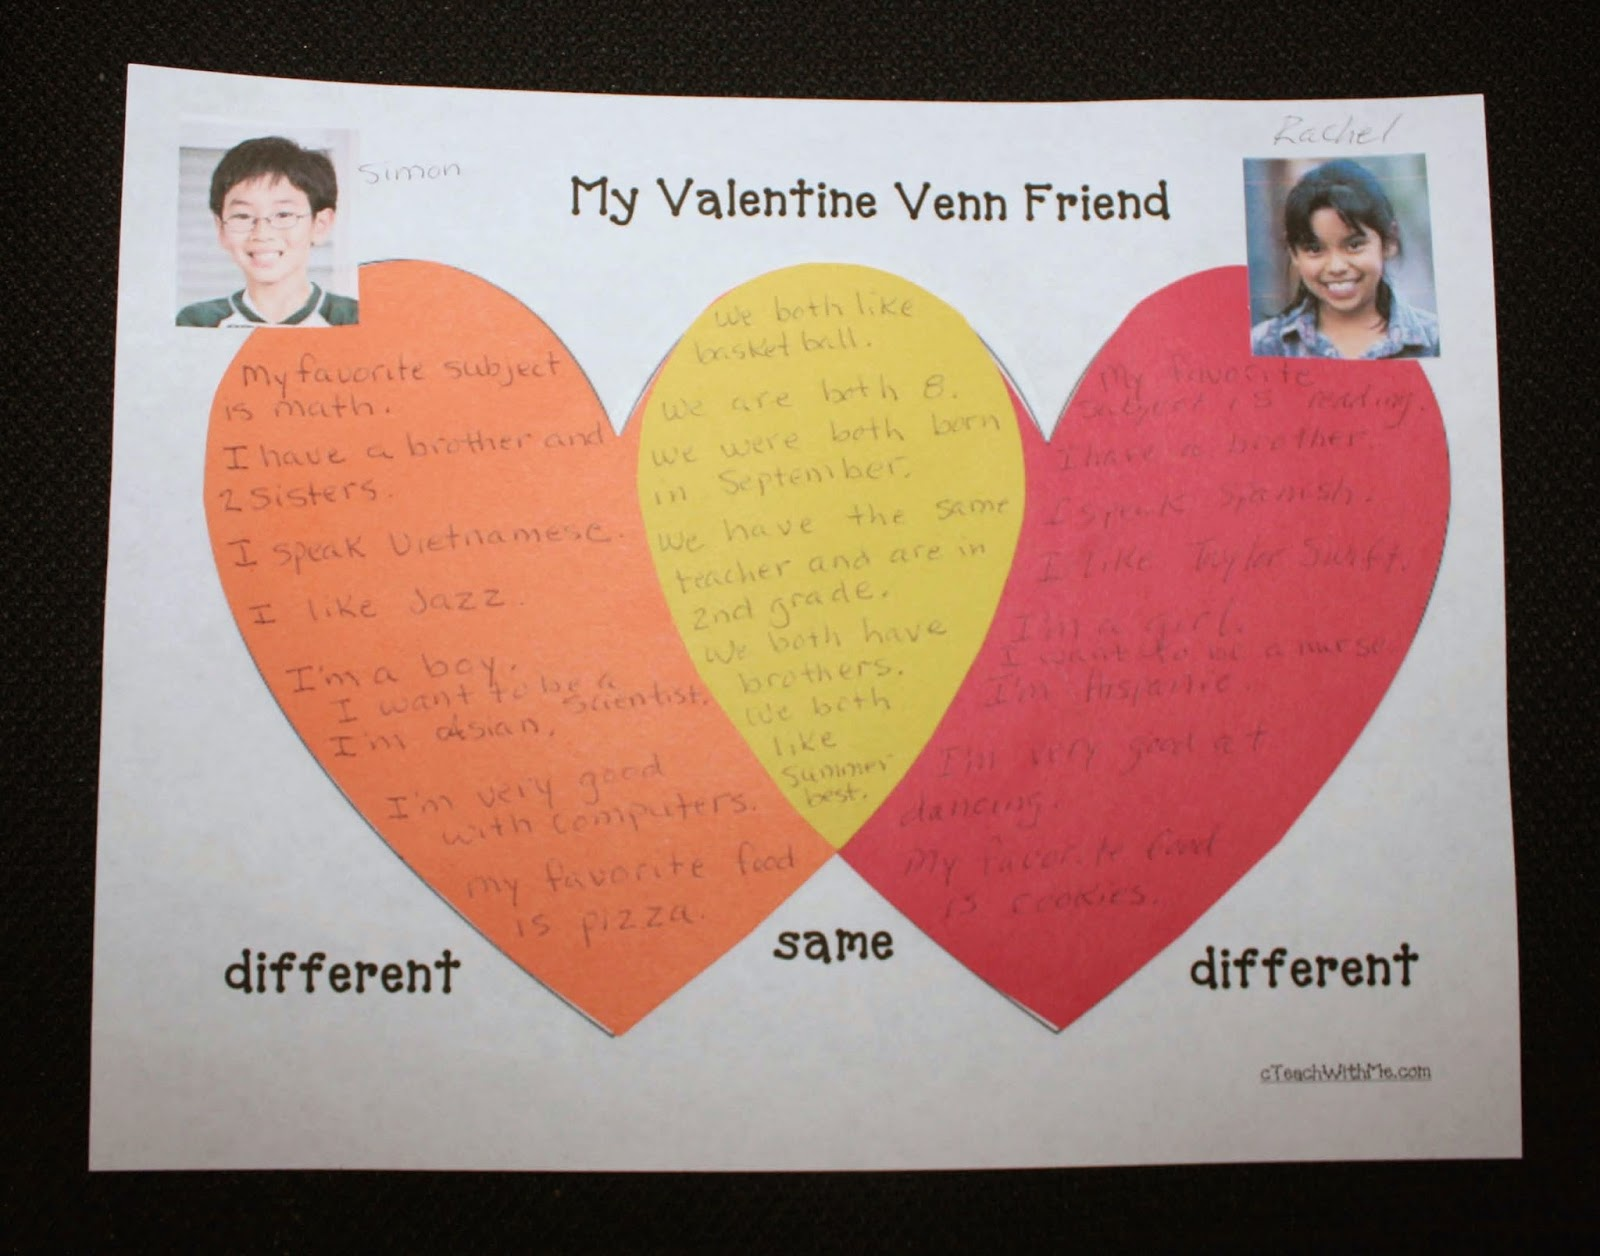 classroom freebies valentine venn friends